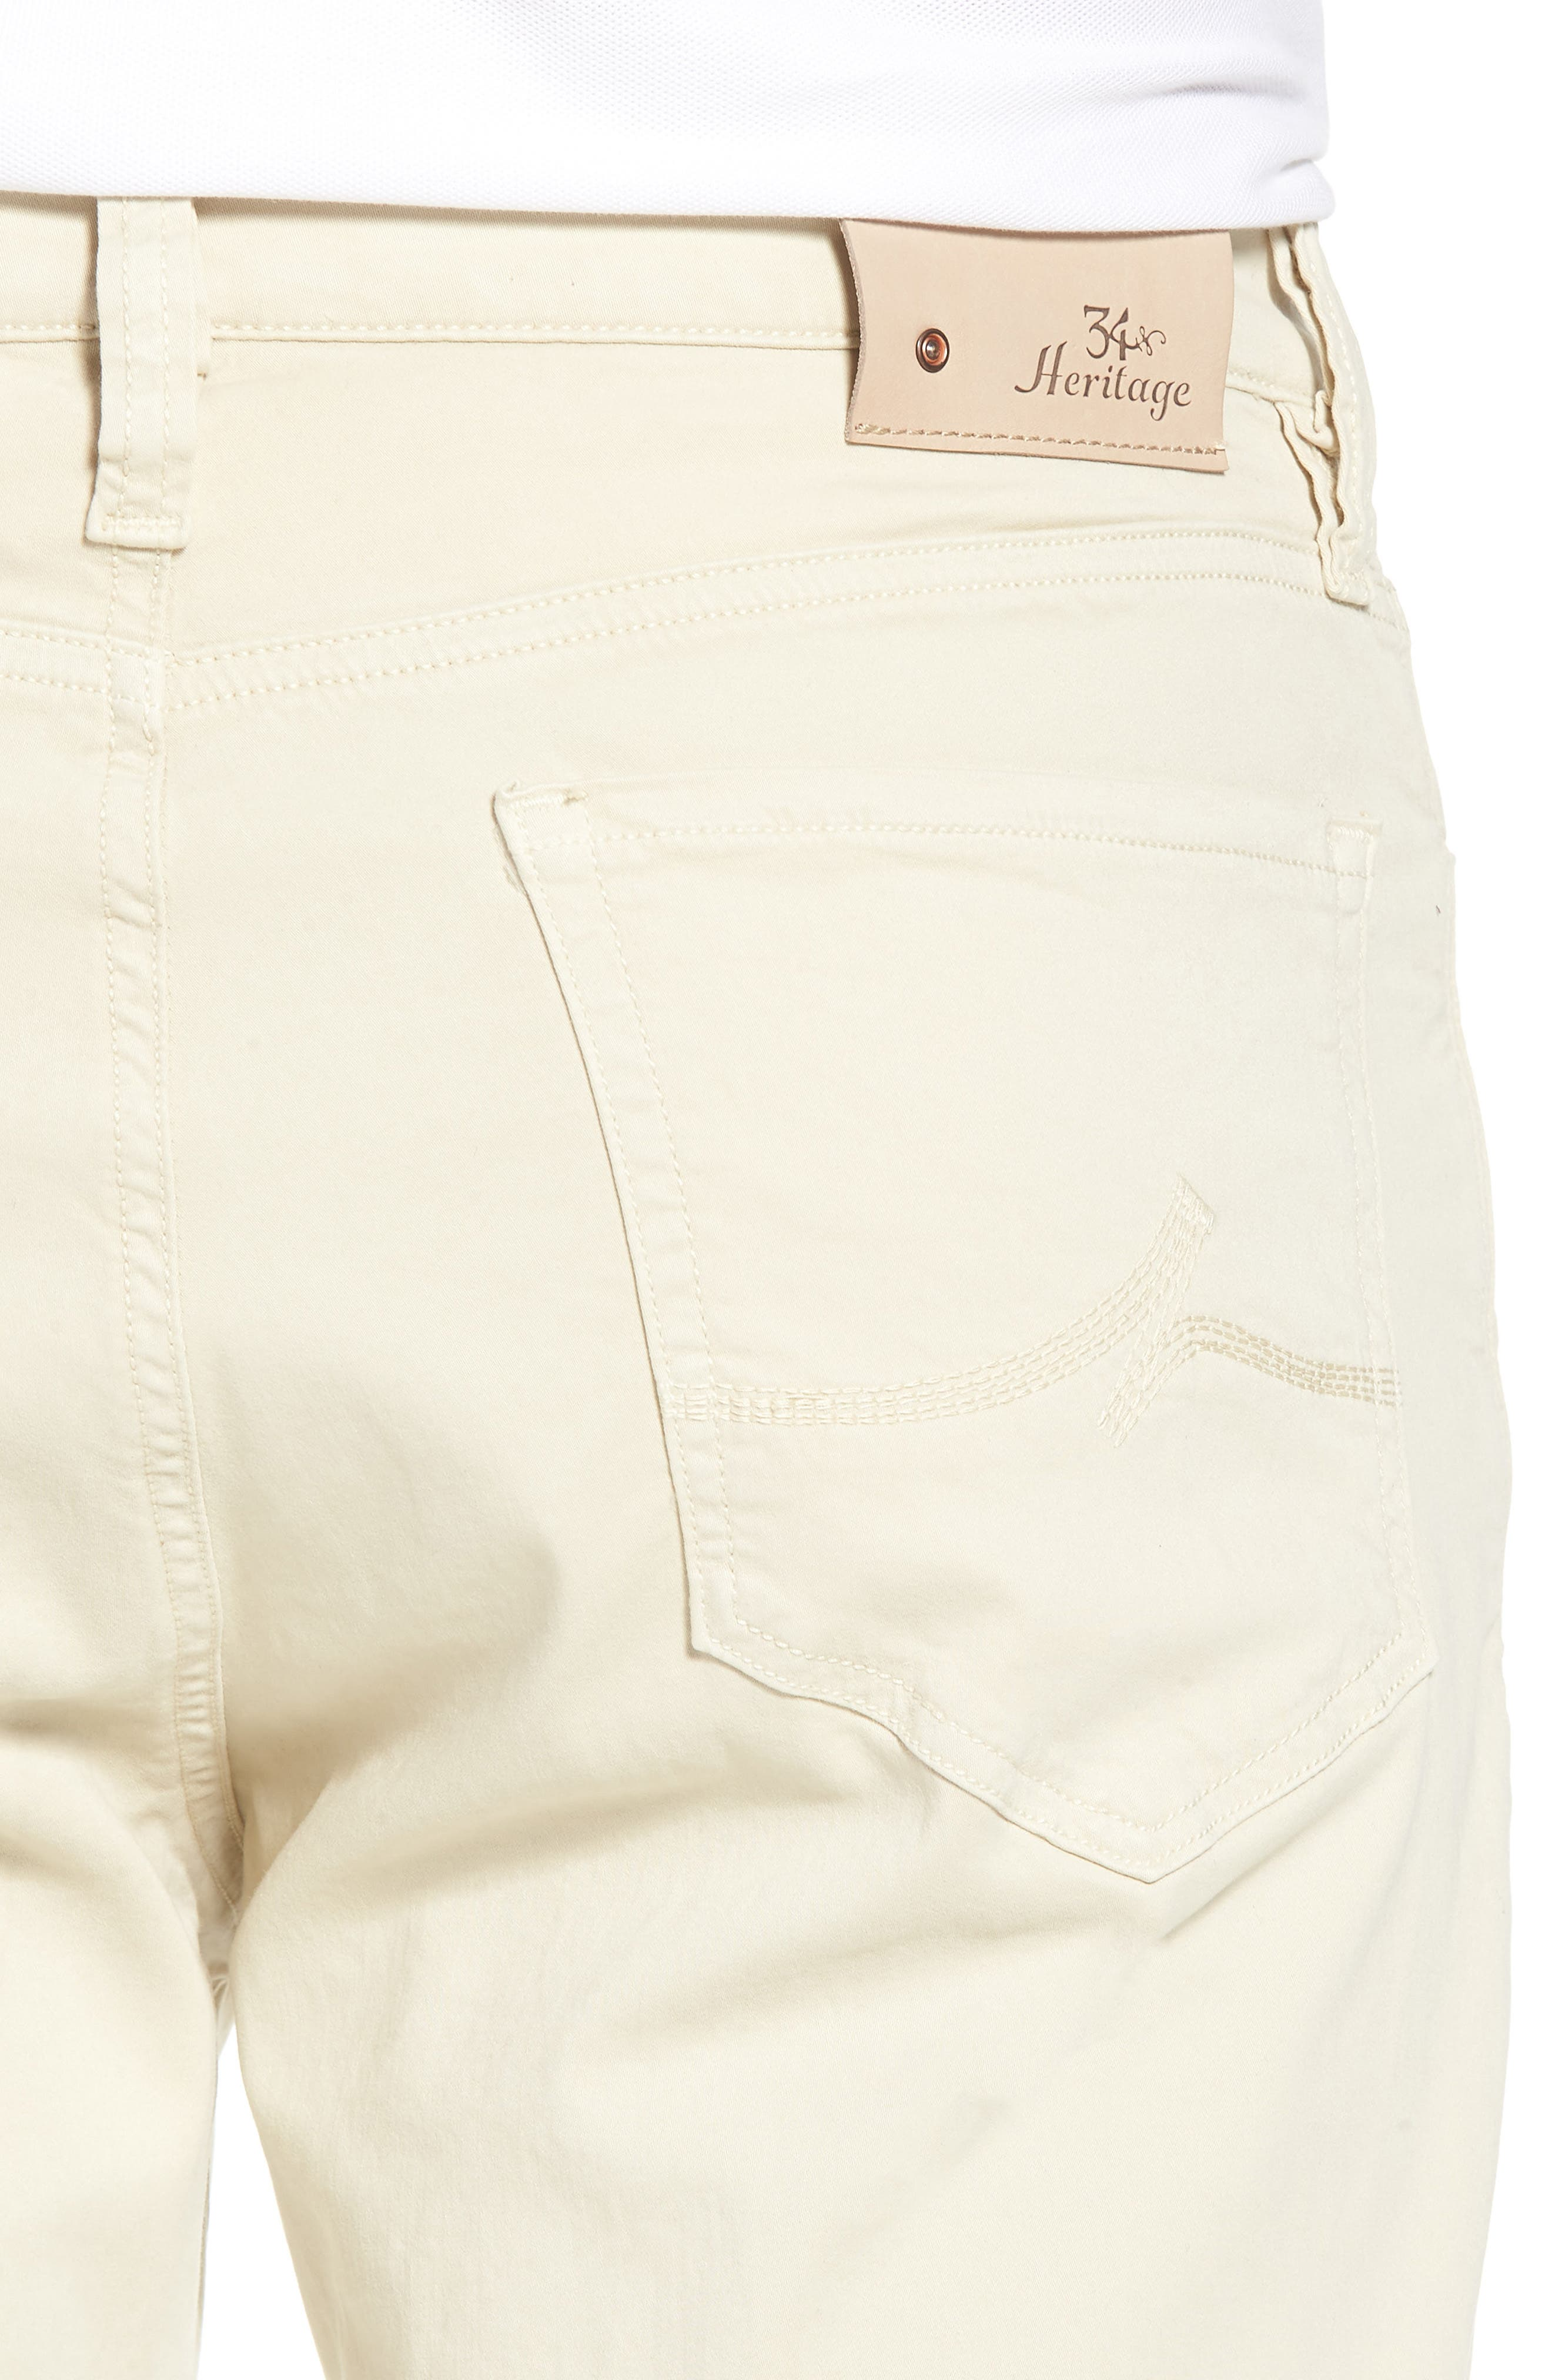 Charisma Relaxed Fit Jeans,                             Alternate thumbnail 4, color,                             BONE TWILL